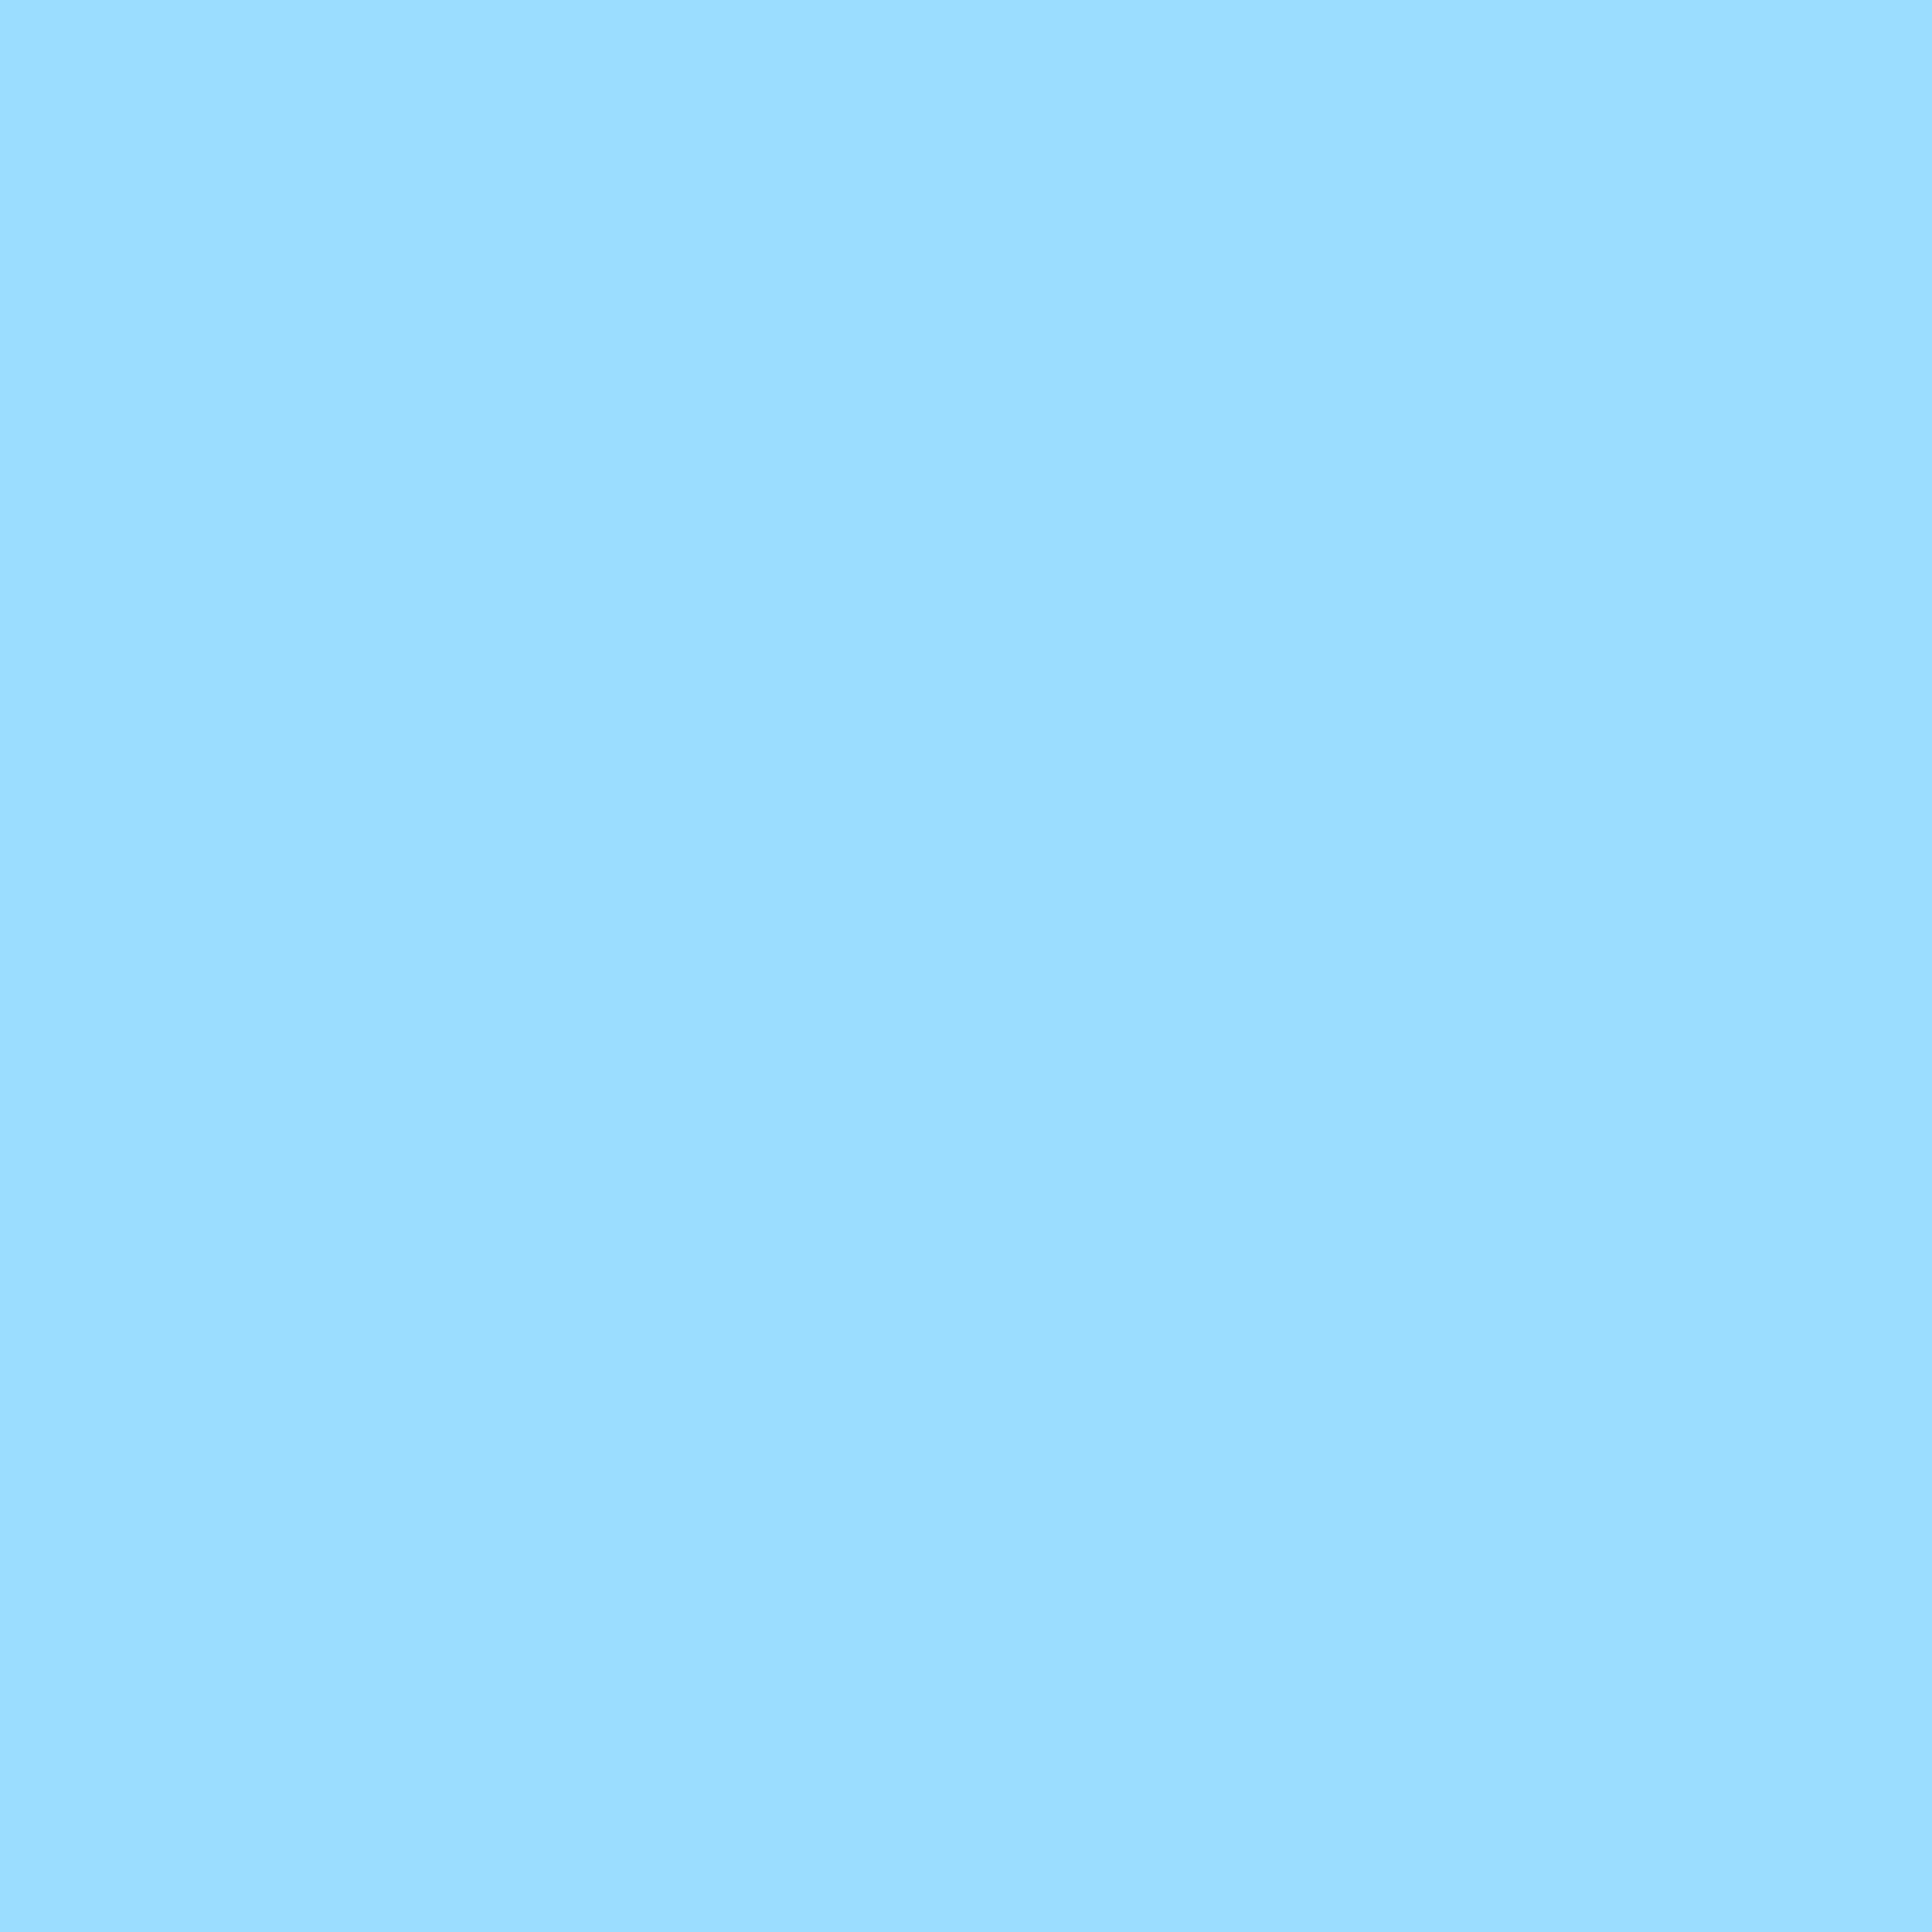 3600x3600 Columbia Blue Solid Color Background